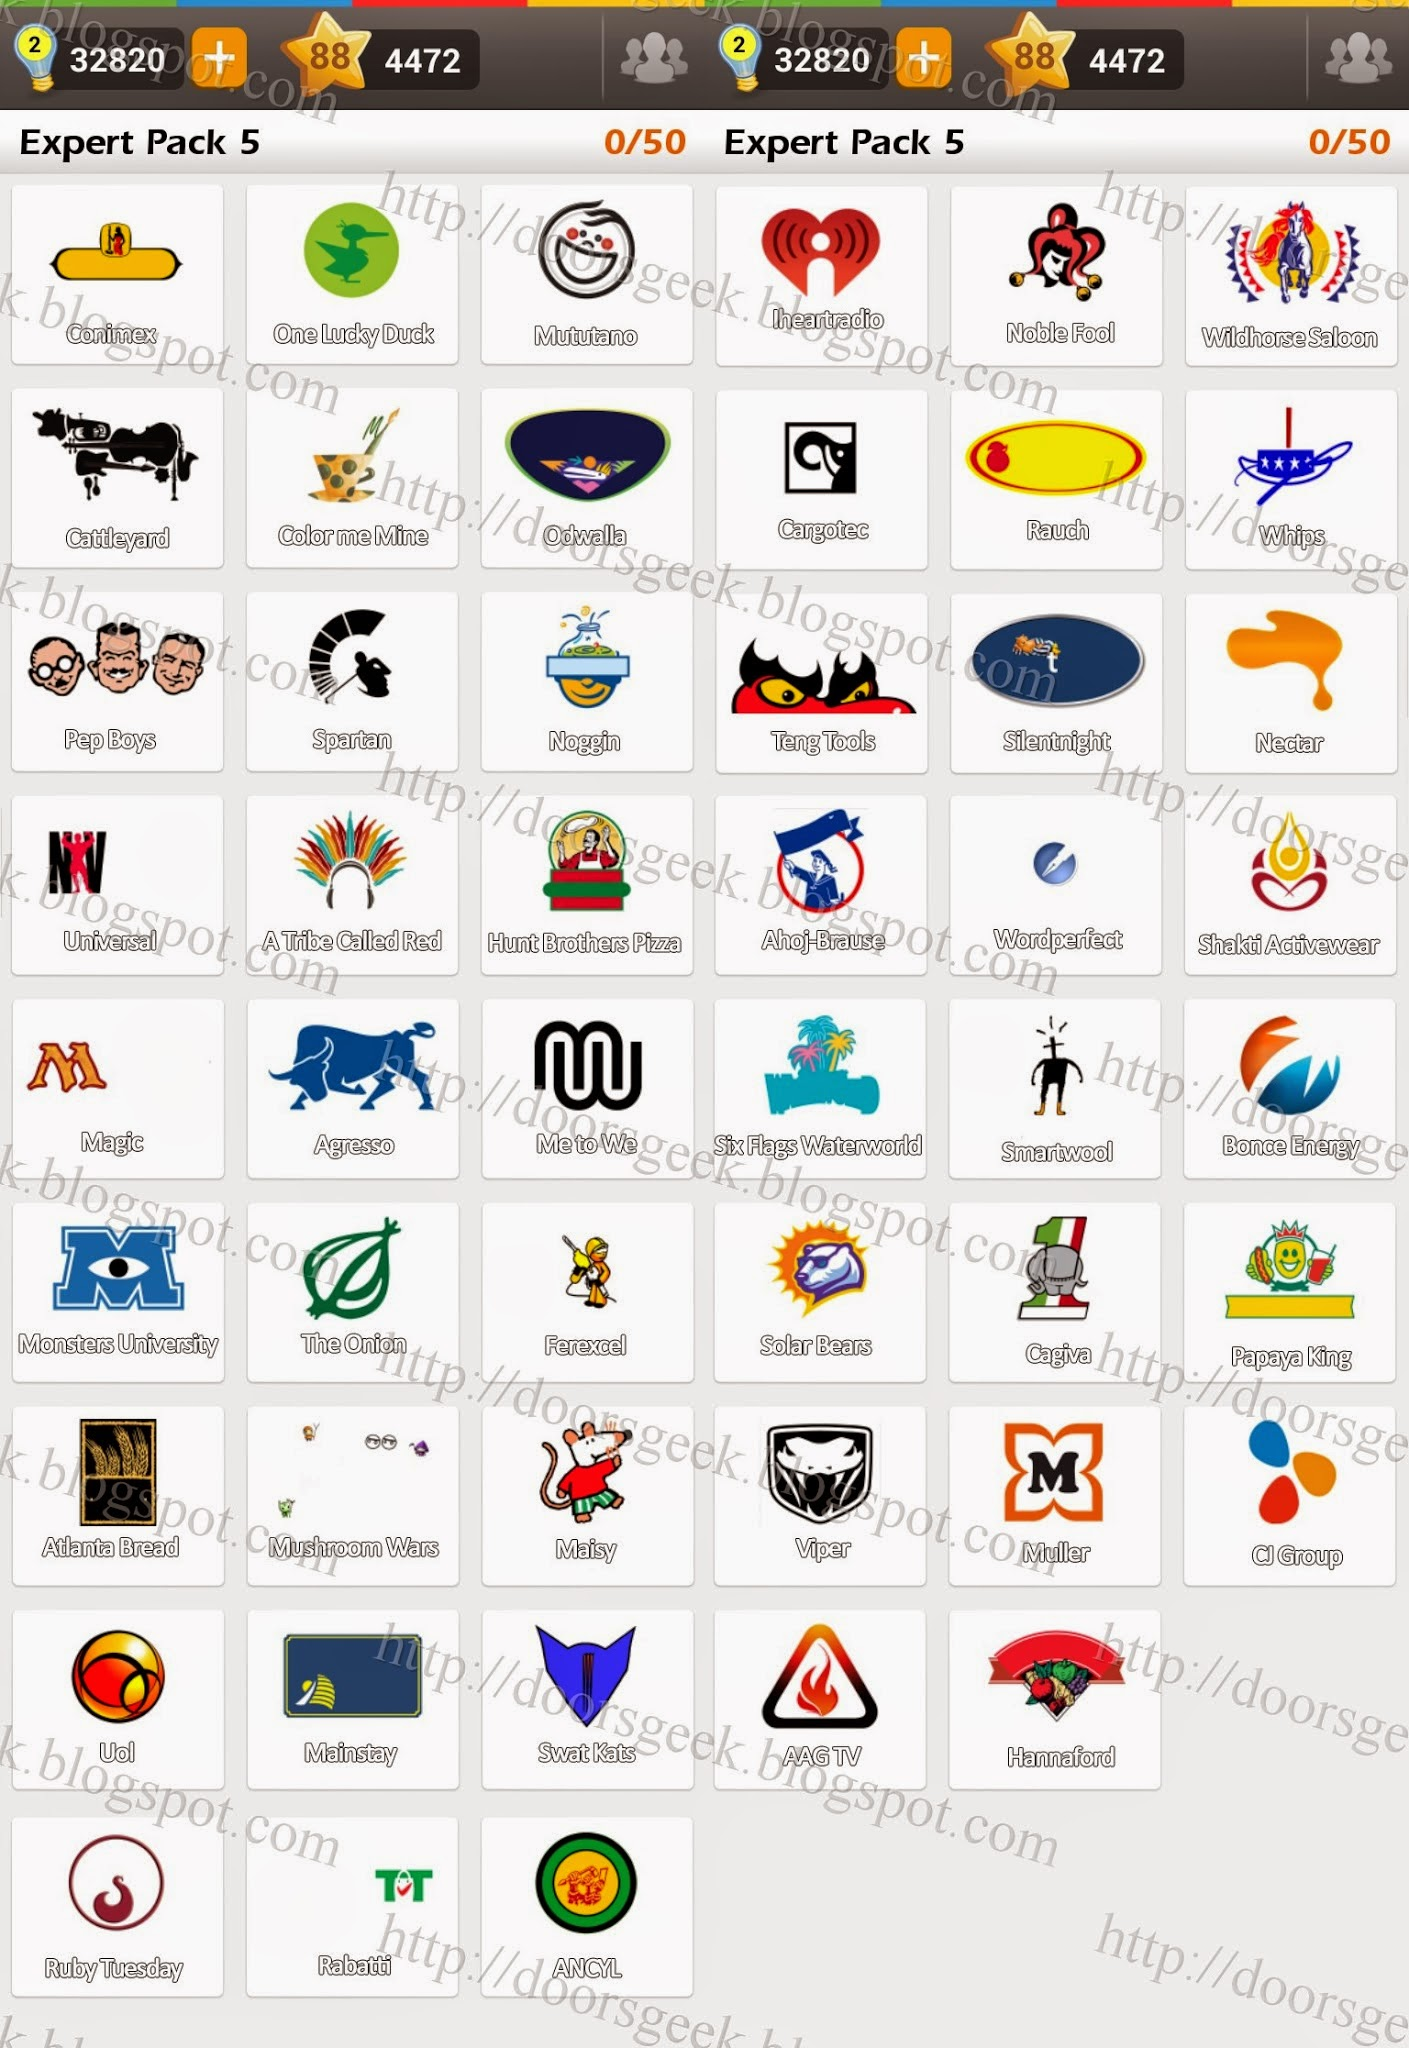 Logo game guess the brand expert pack 5 doors geek for Gardening tools 94 game answers